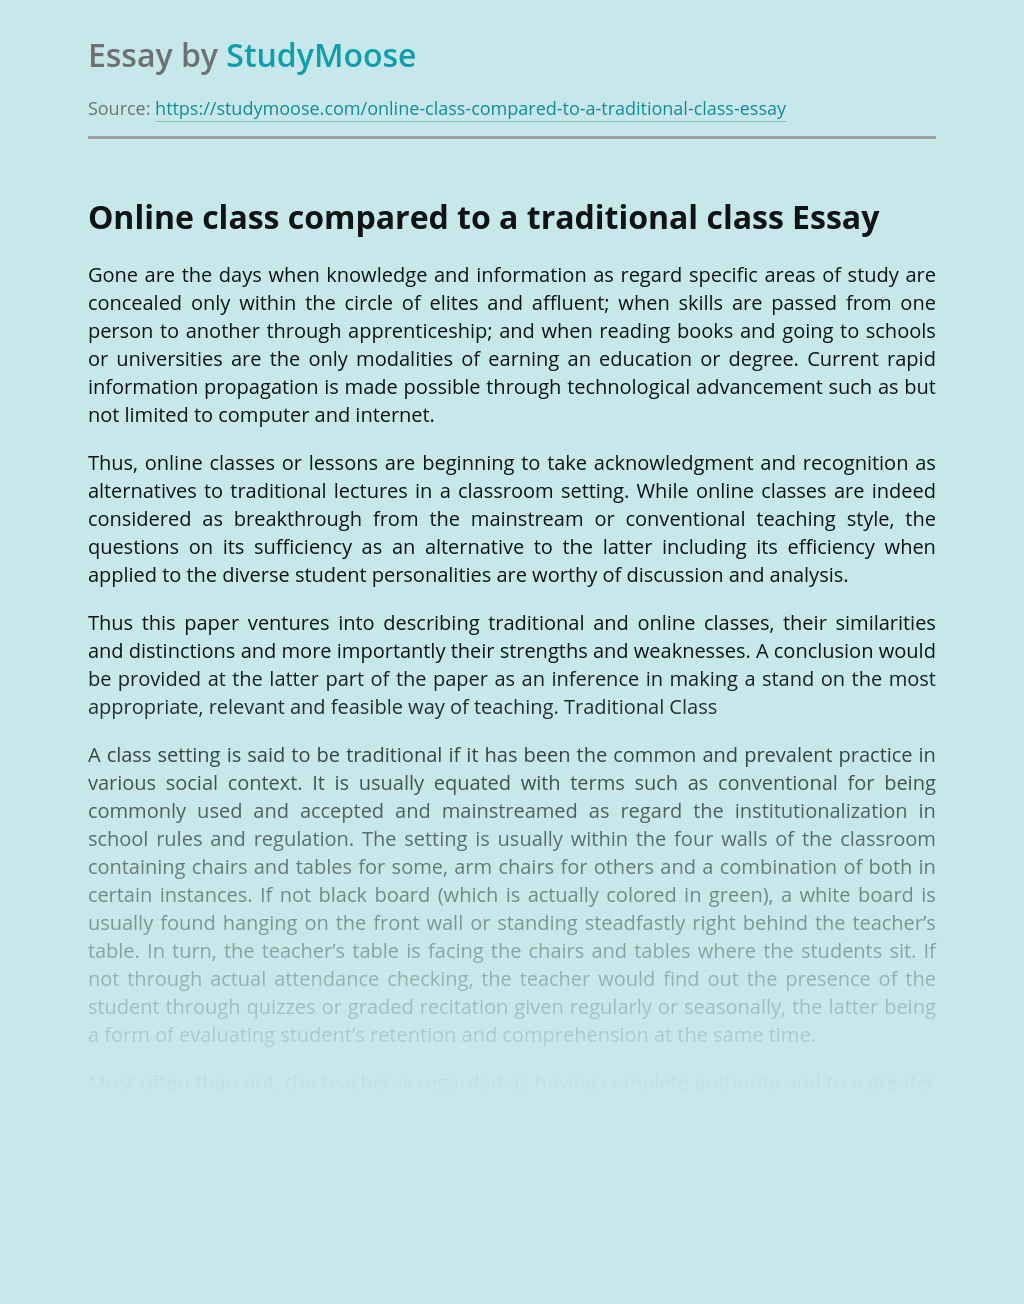 Online class compared to a traditional class